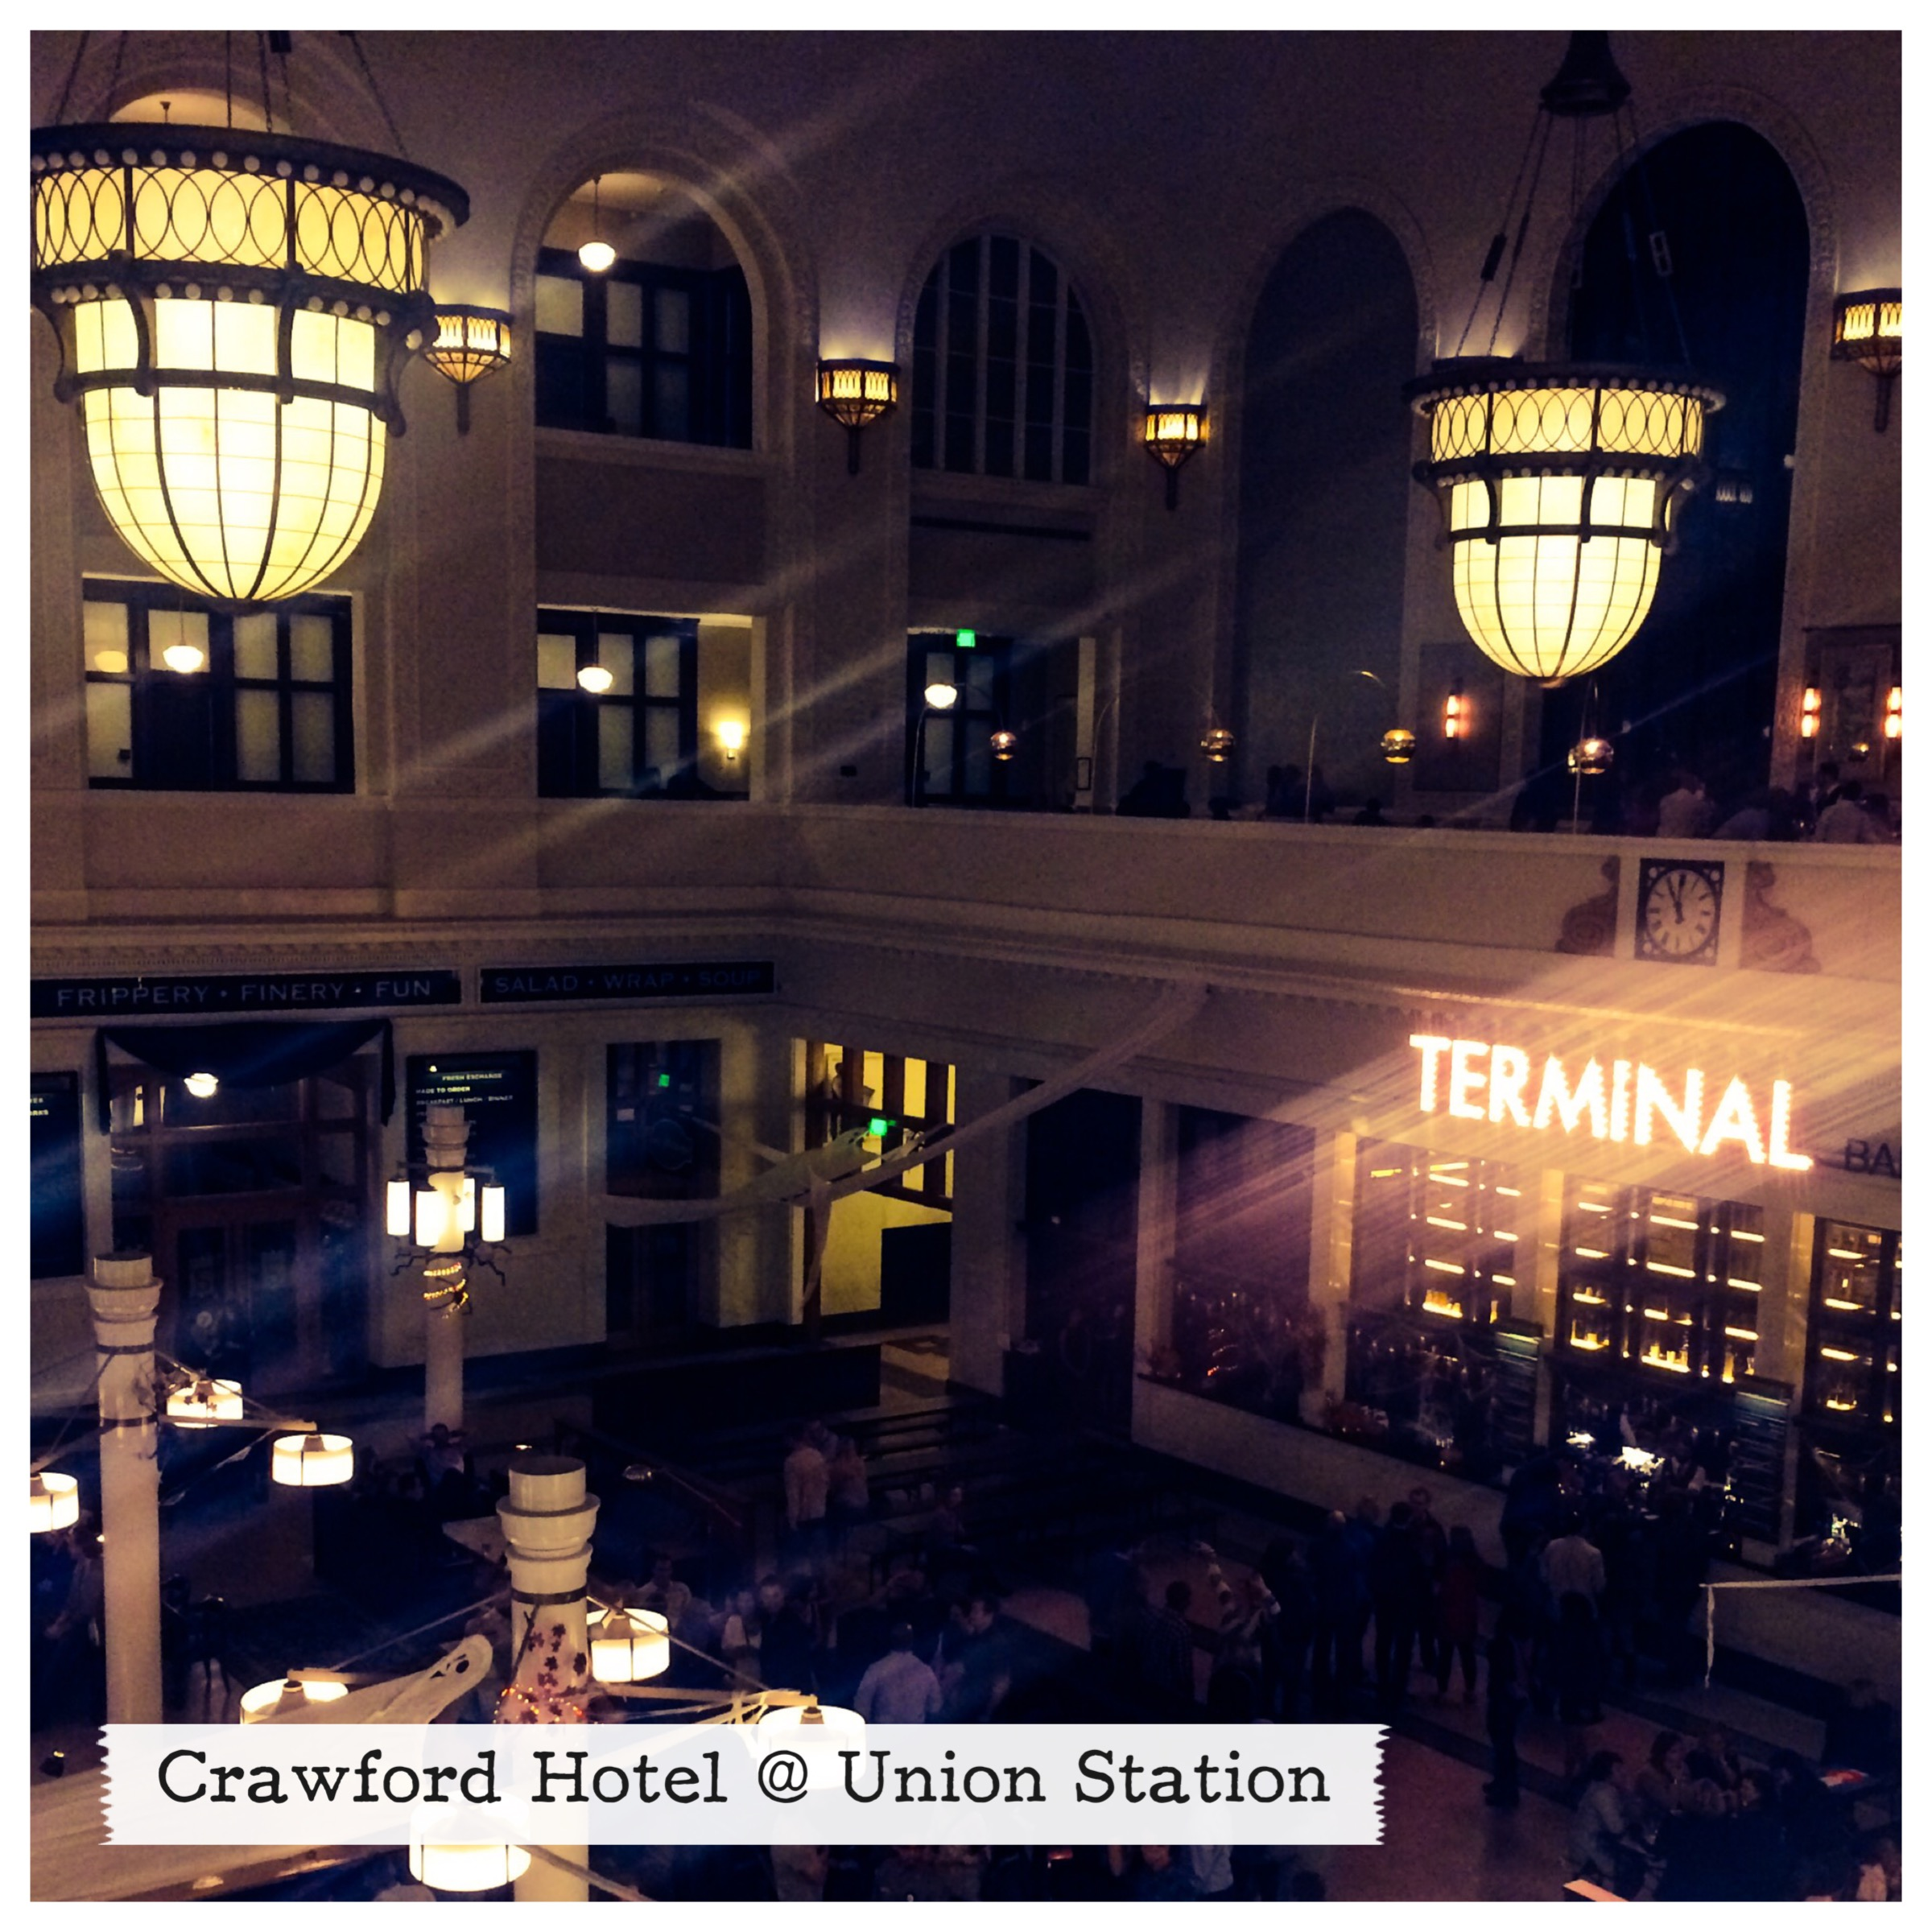 The in-Terminal lobby at the Crawford